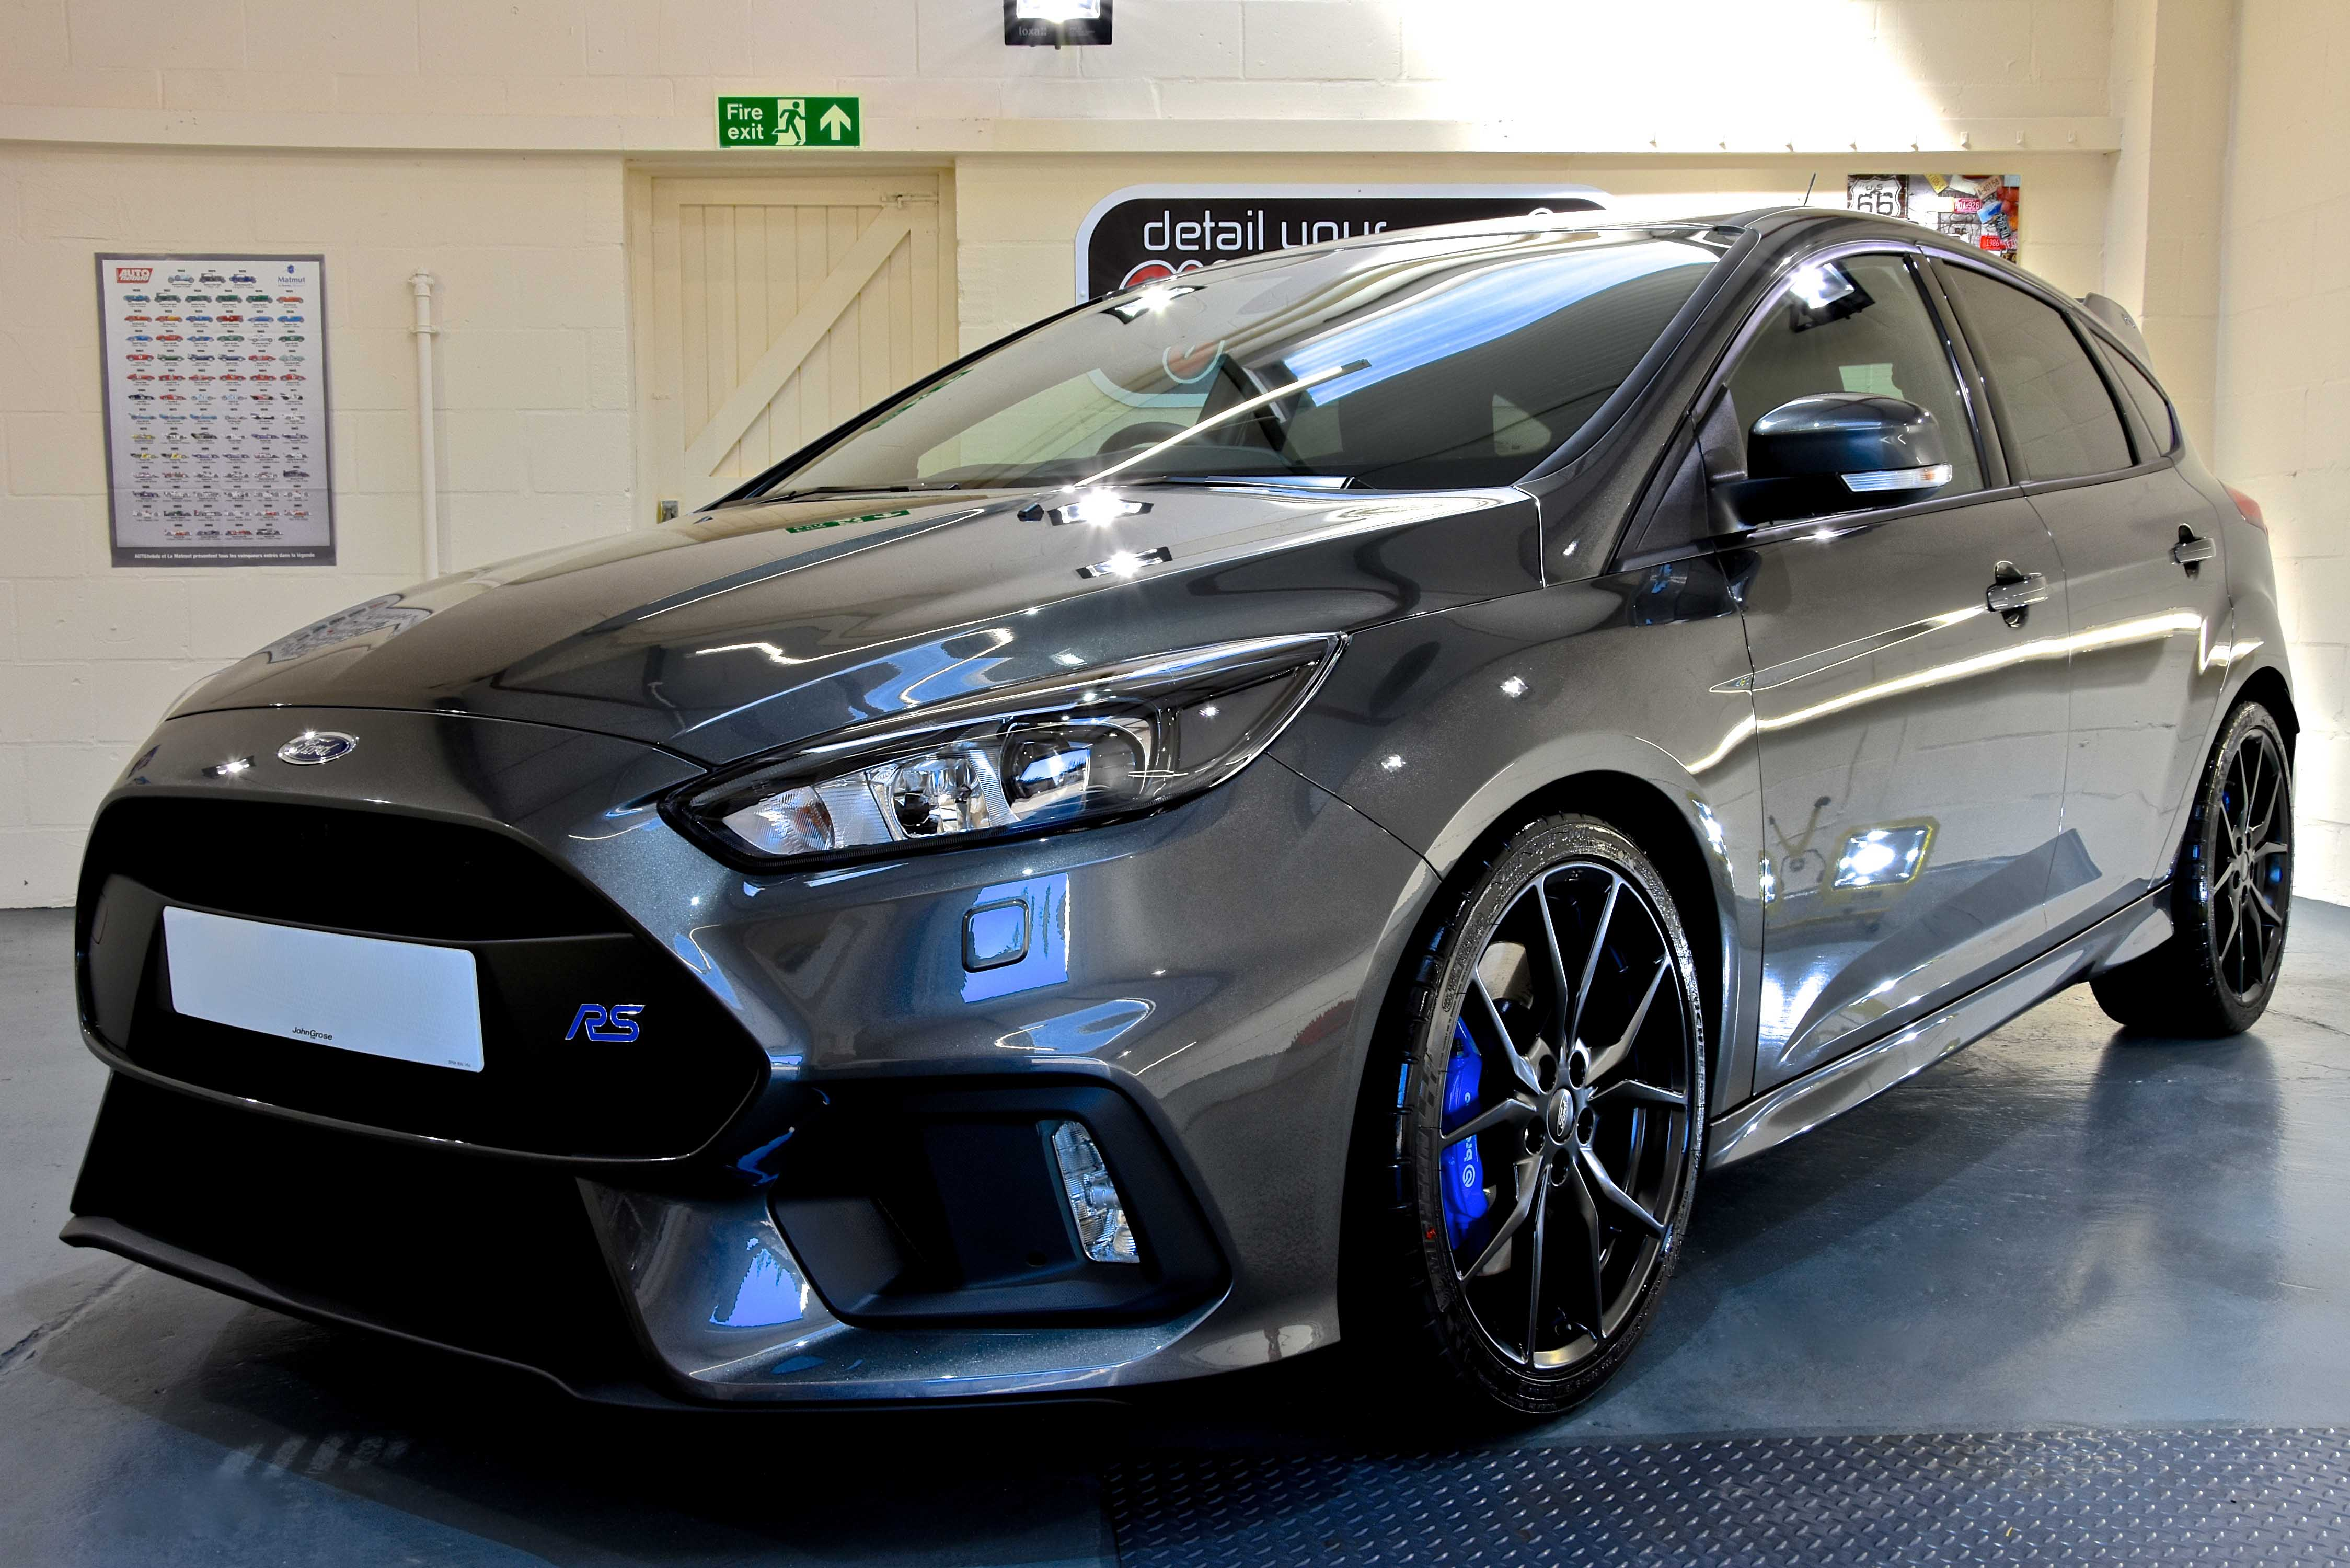 Ford focus RS New Car Enhancement and Protection Detail with Gtechniq Crystal Serum Light and EXOv2